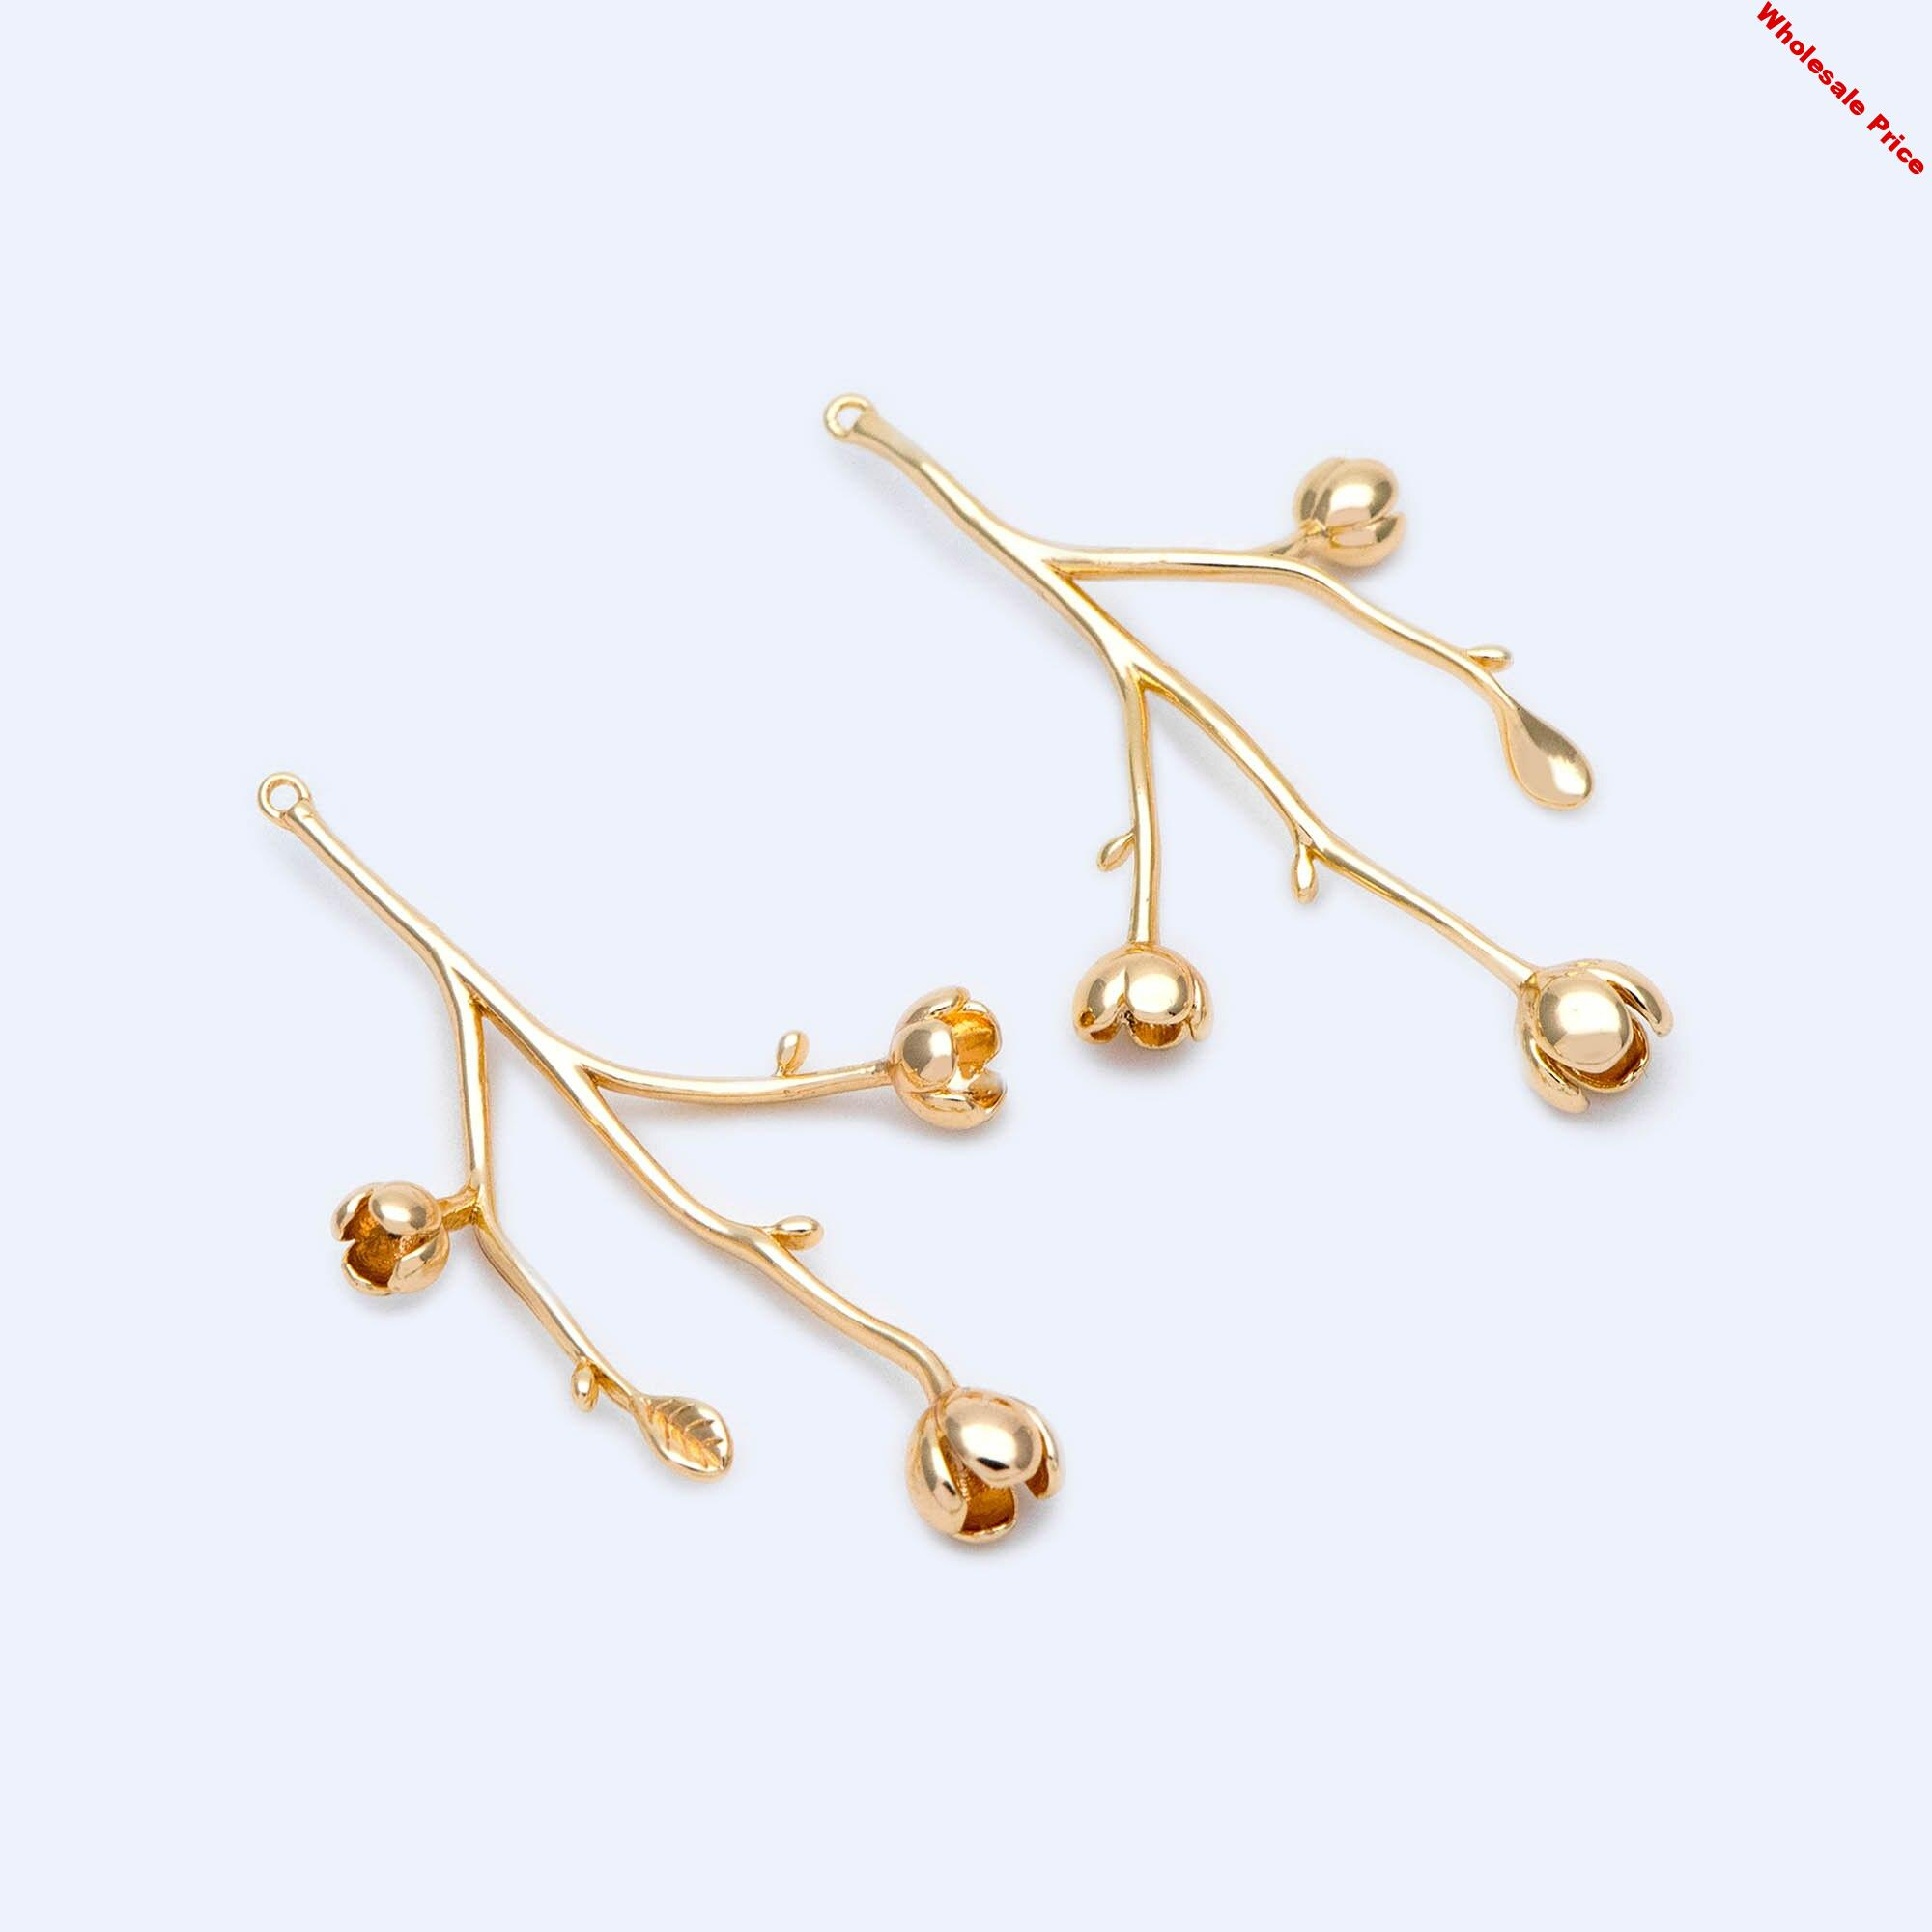 10pcs Gold Flower Branch Charms